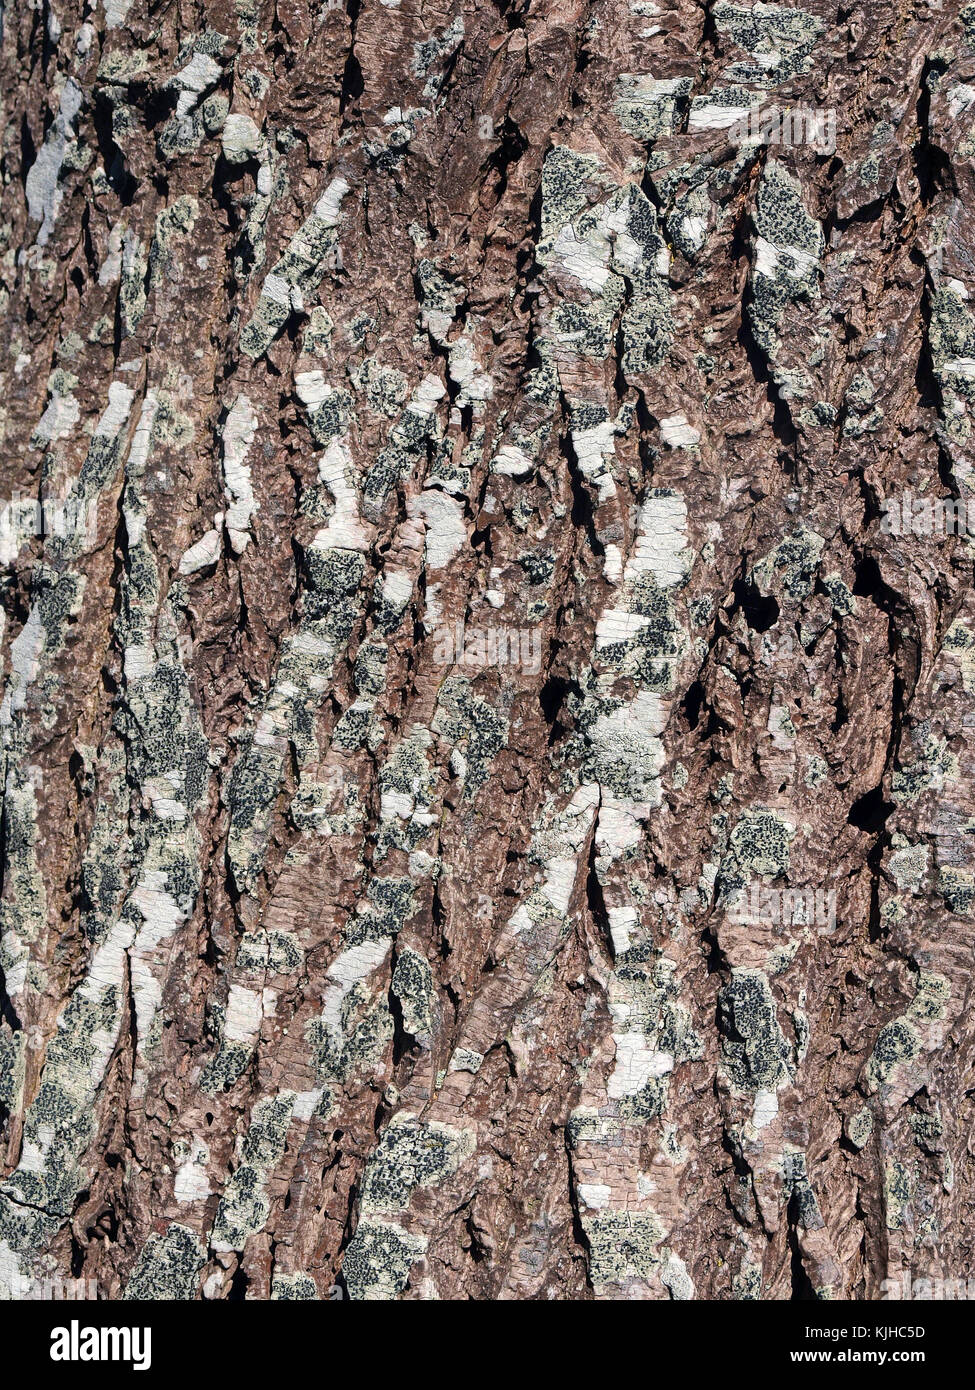 Alder tree bark surface texture close up as background - Stock Image